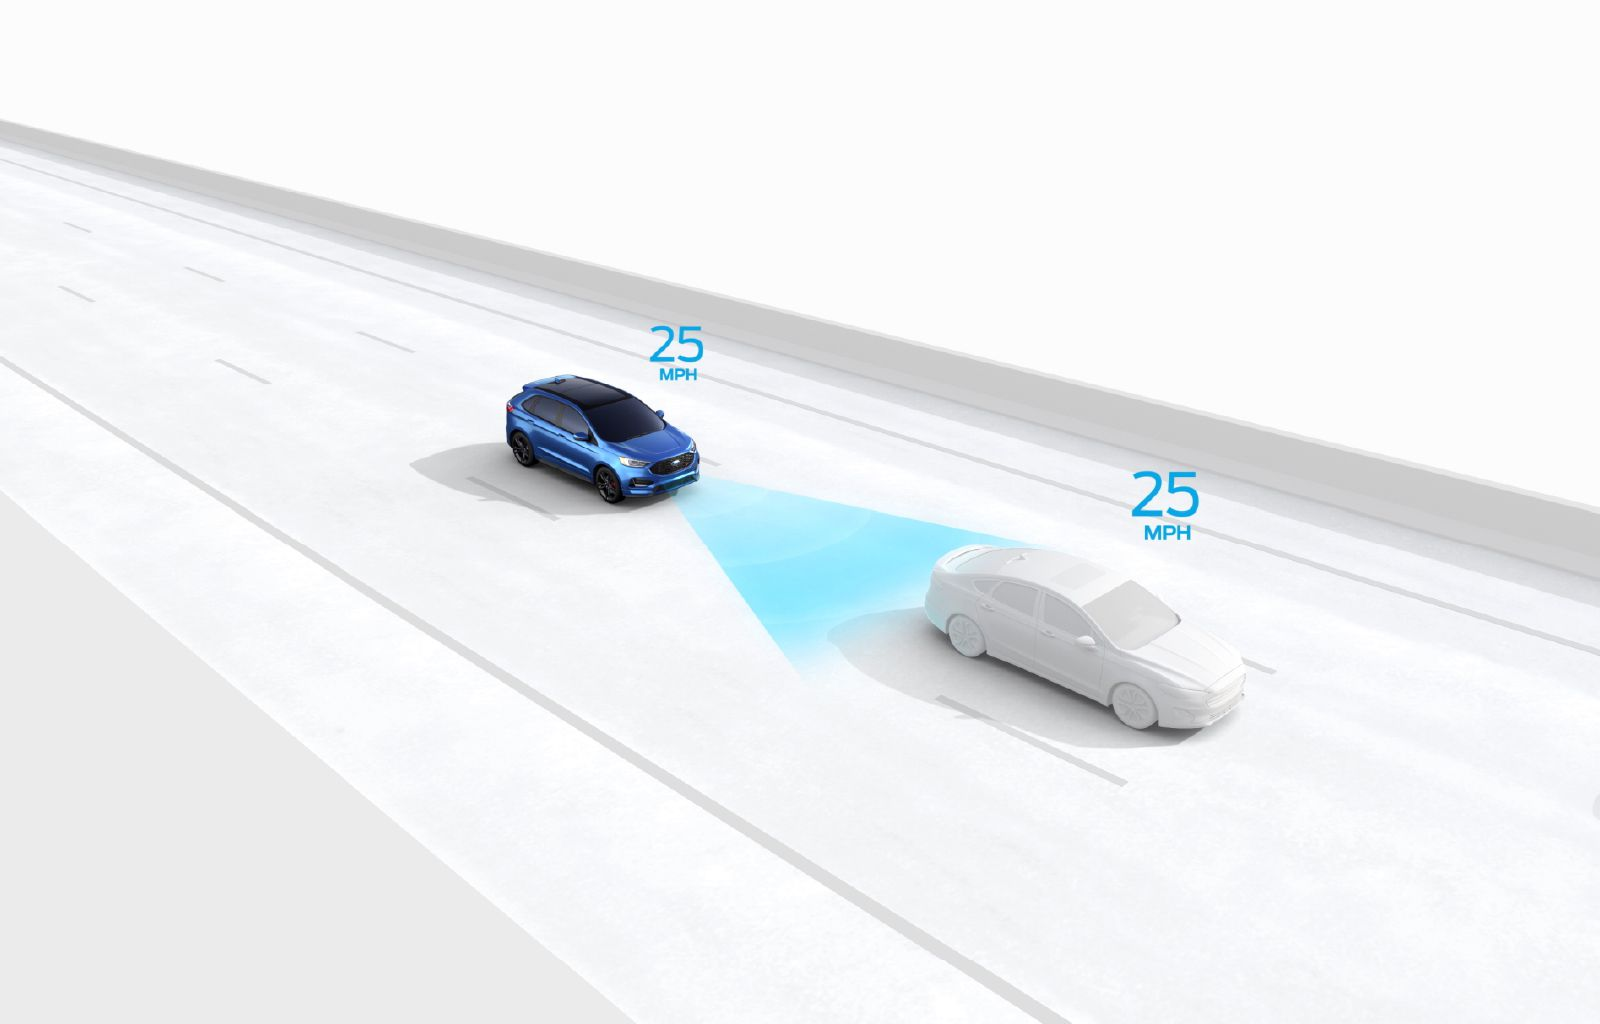 Adaptive Cruise Control with Stop-and-Go can bring your vehicle to a complete stop when traffic slows and then accelerate back to your pre-set speed when things get moving again.